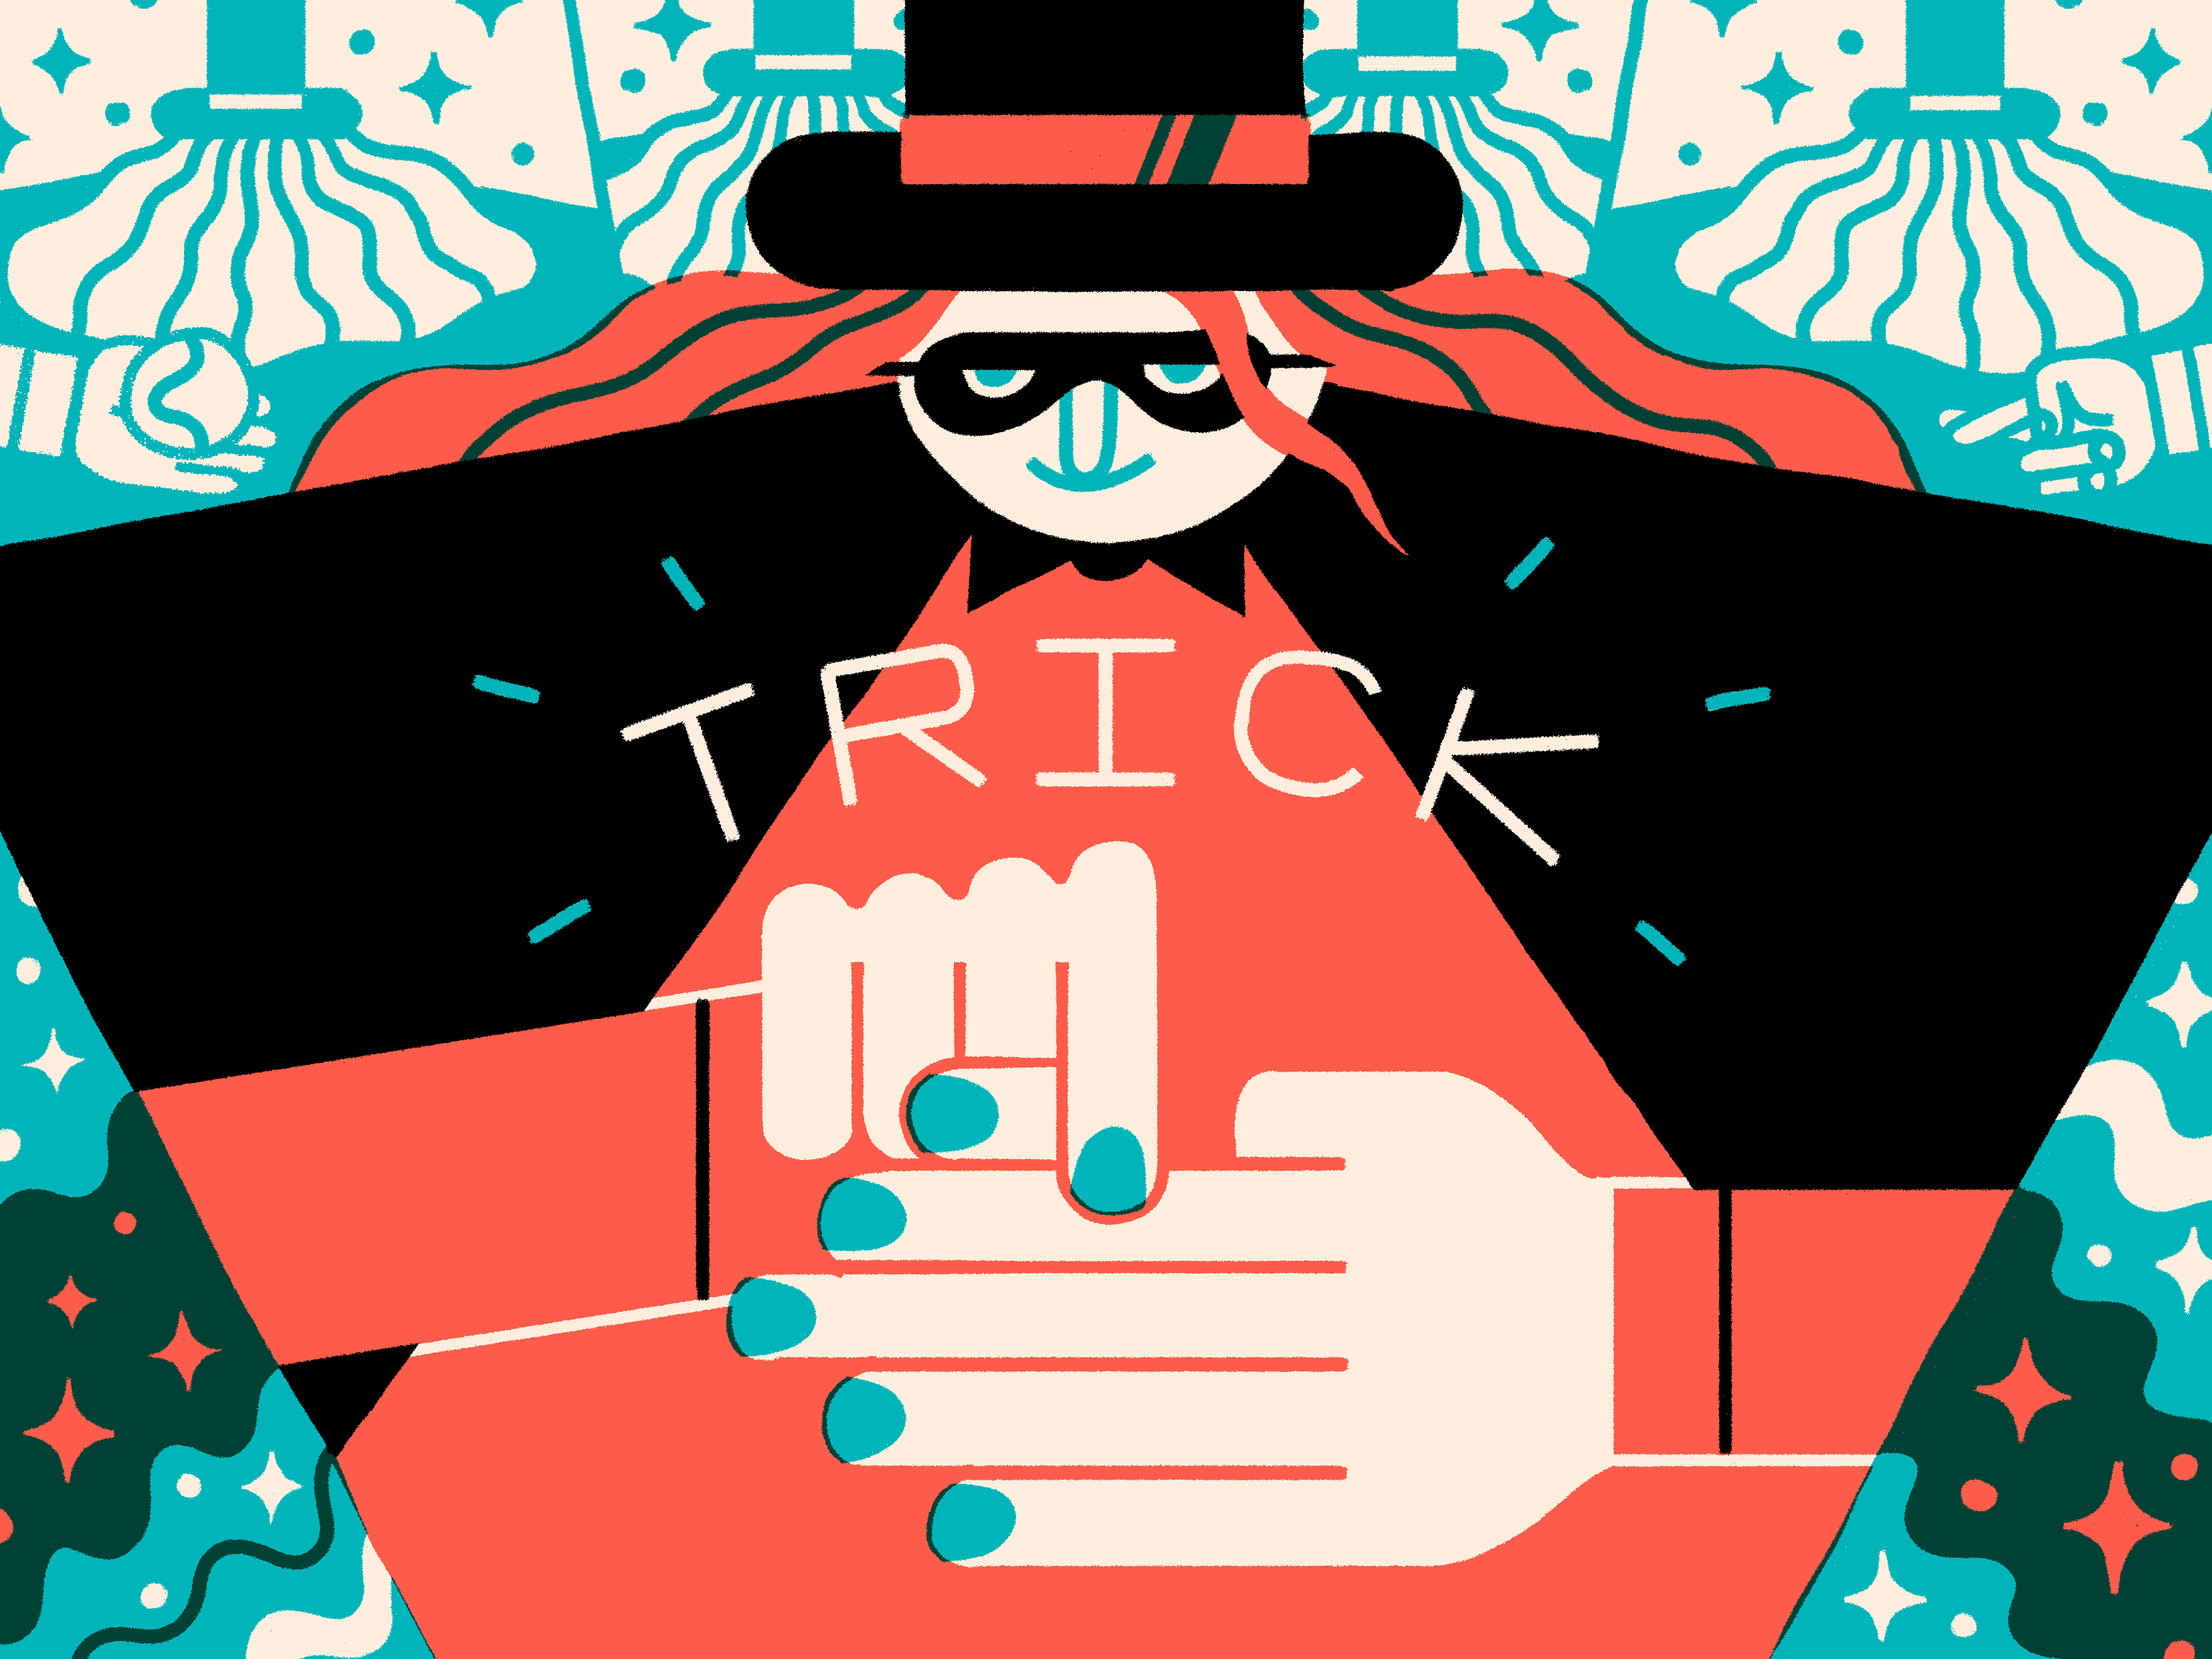 Illustration of a magician in a top hat and mask pretending to remove their thumb, with the word 'Trick' over the top